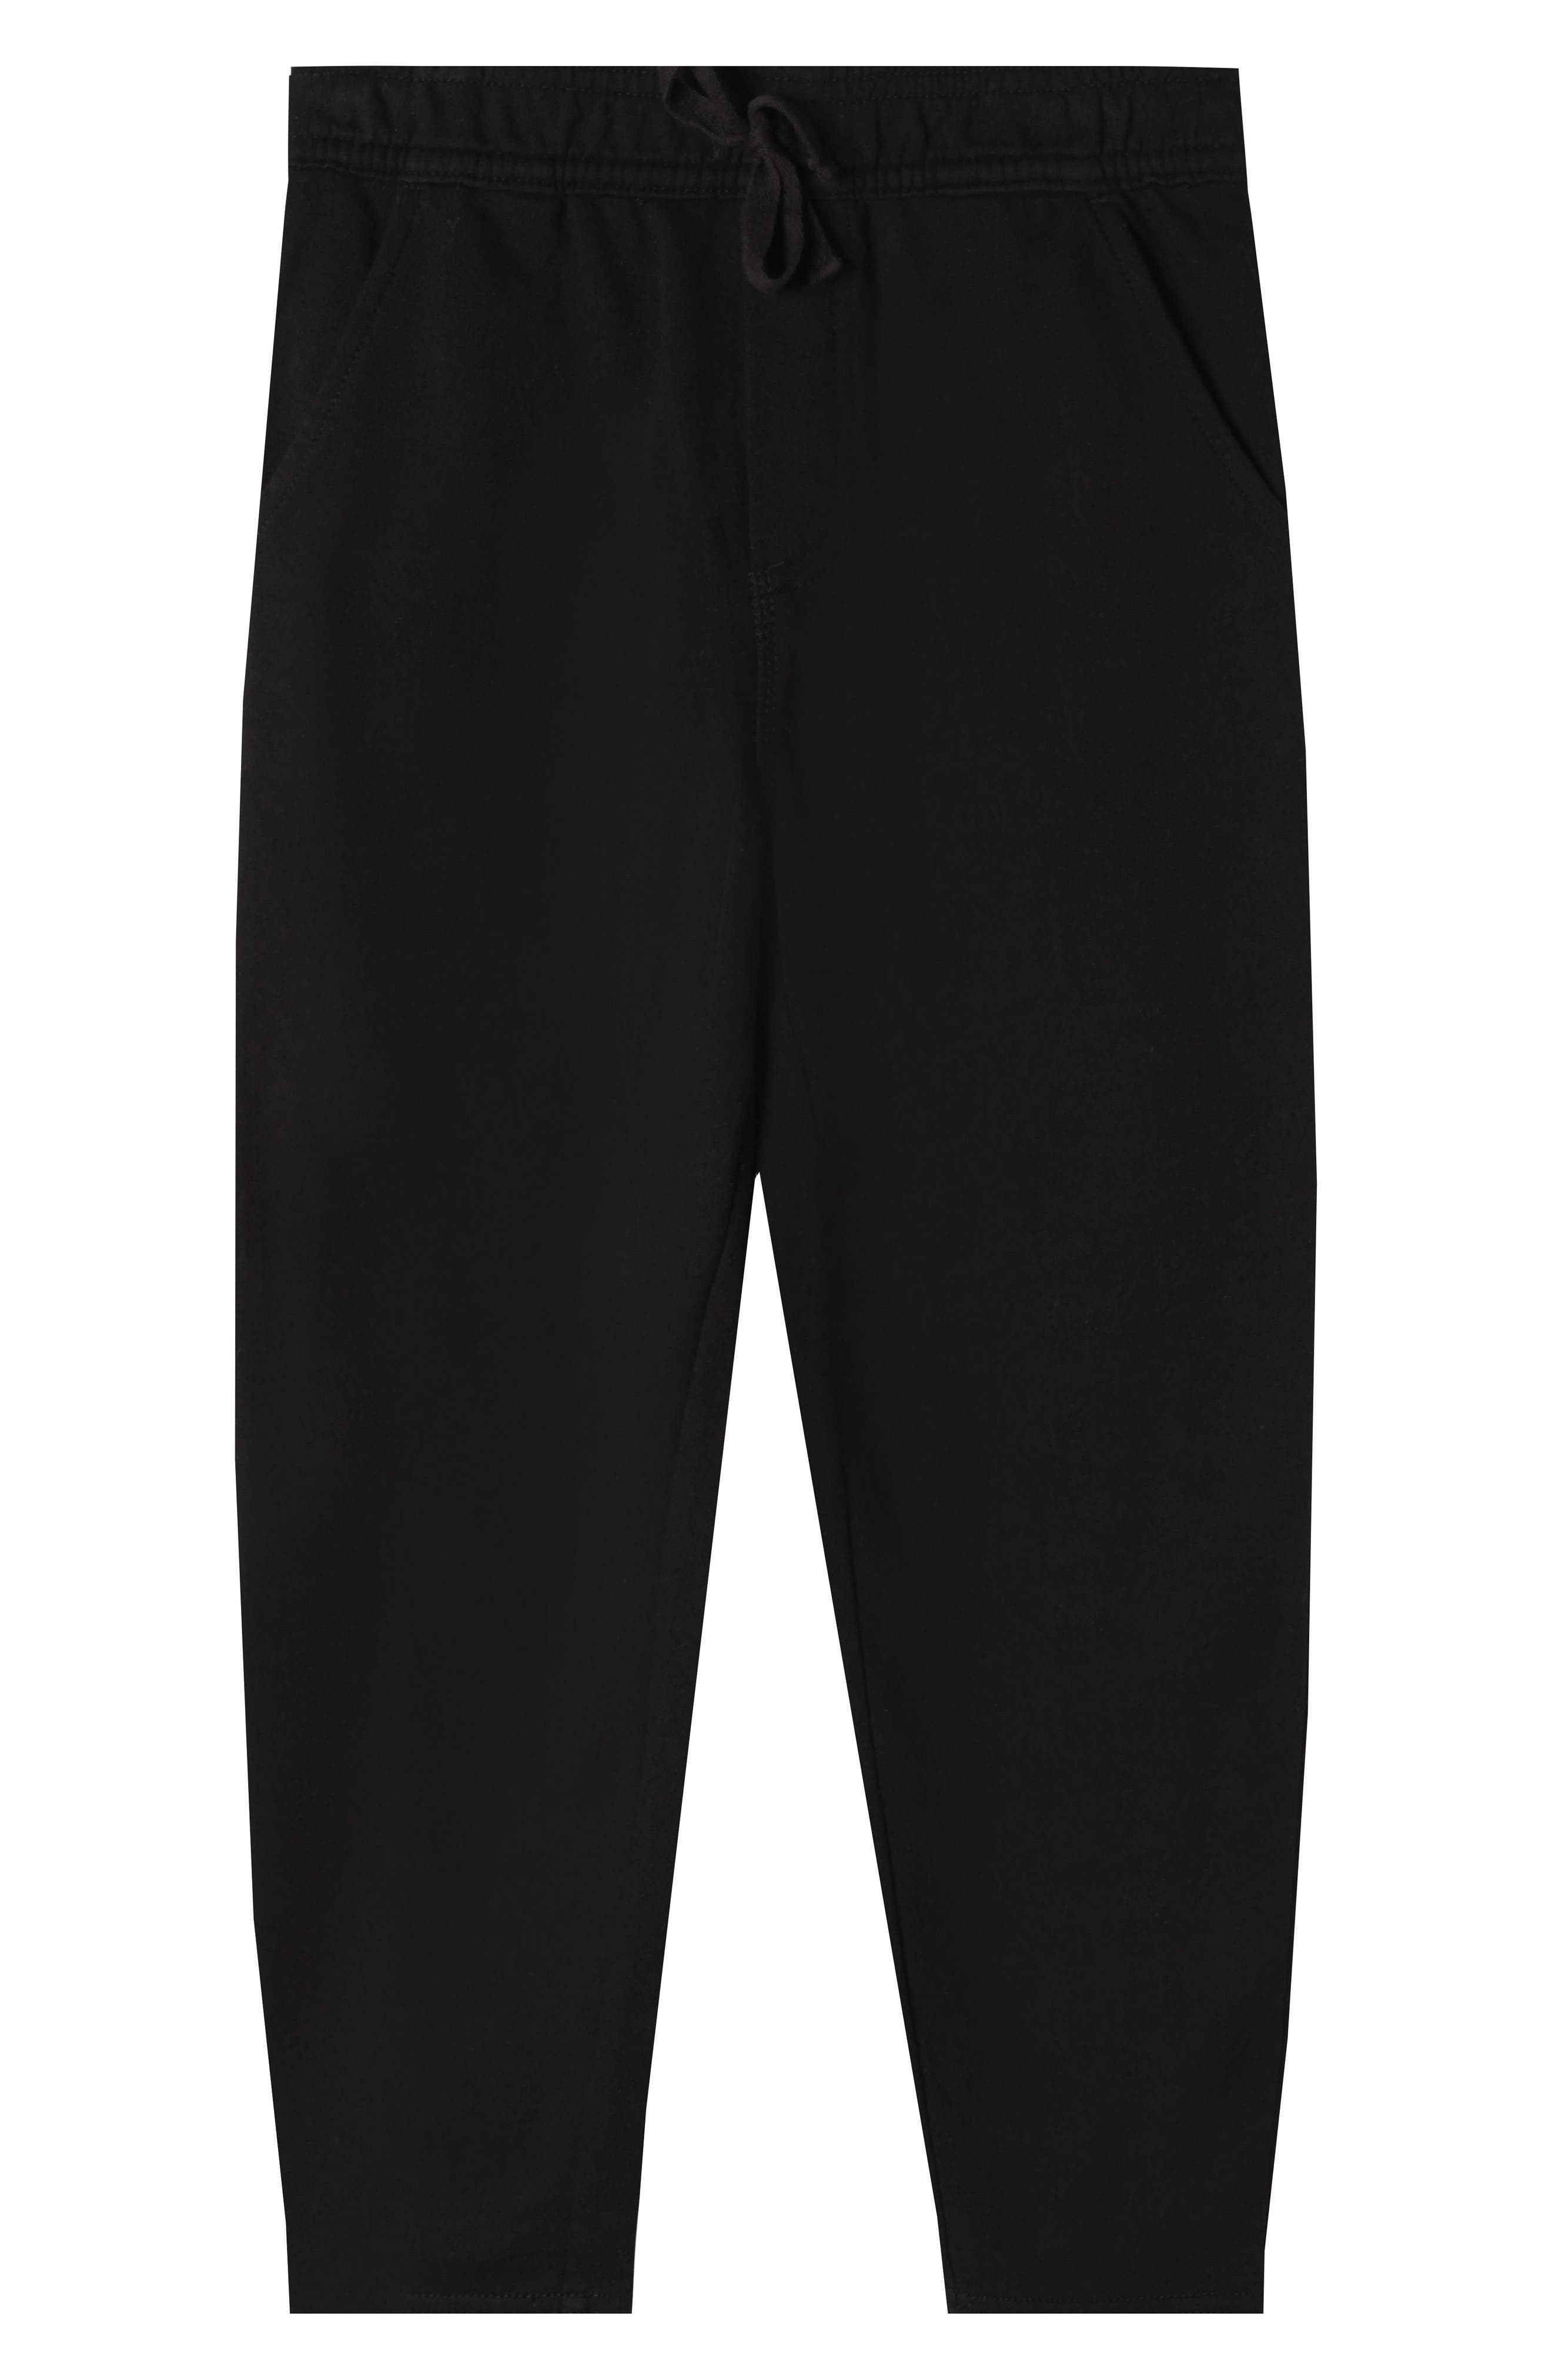 Art & Eden Joseph Jogger Pants (Toddler Boys & Little Boys & Big Boys)